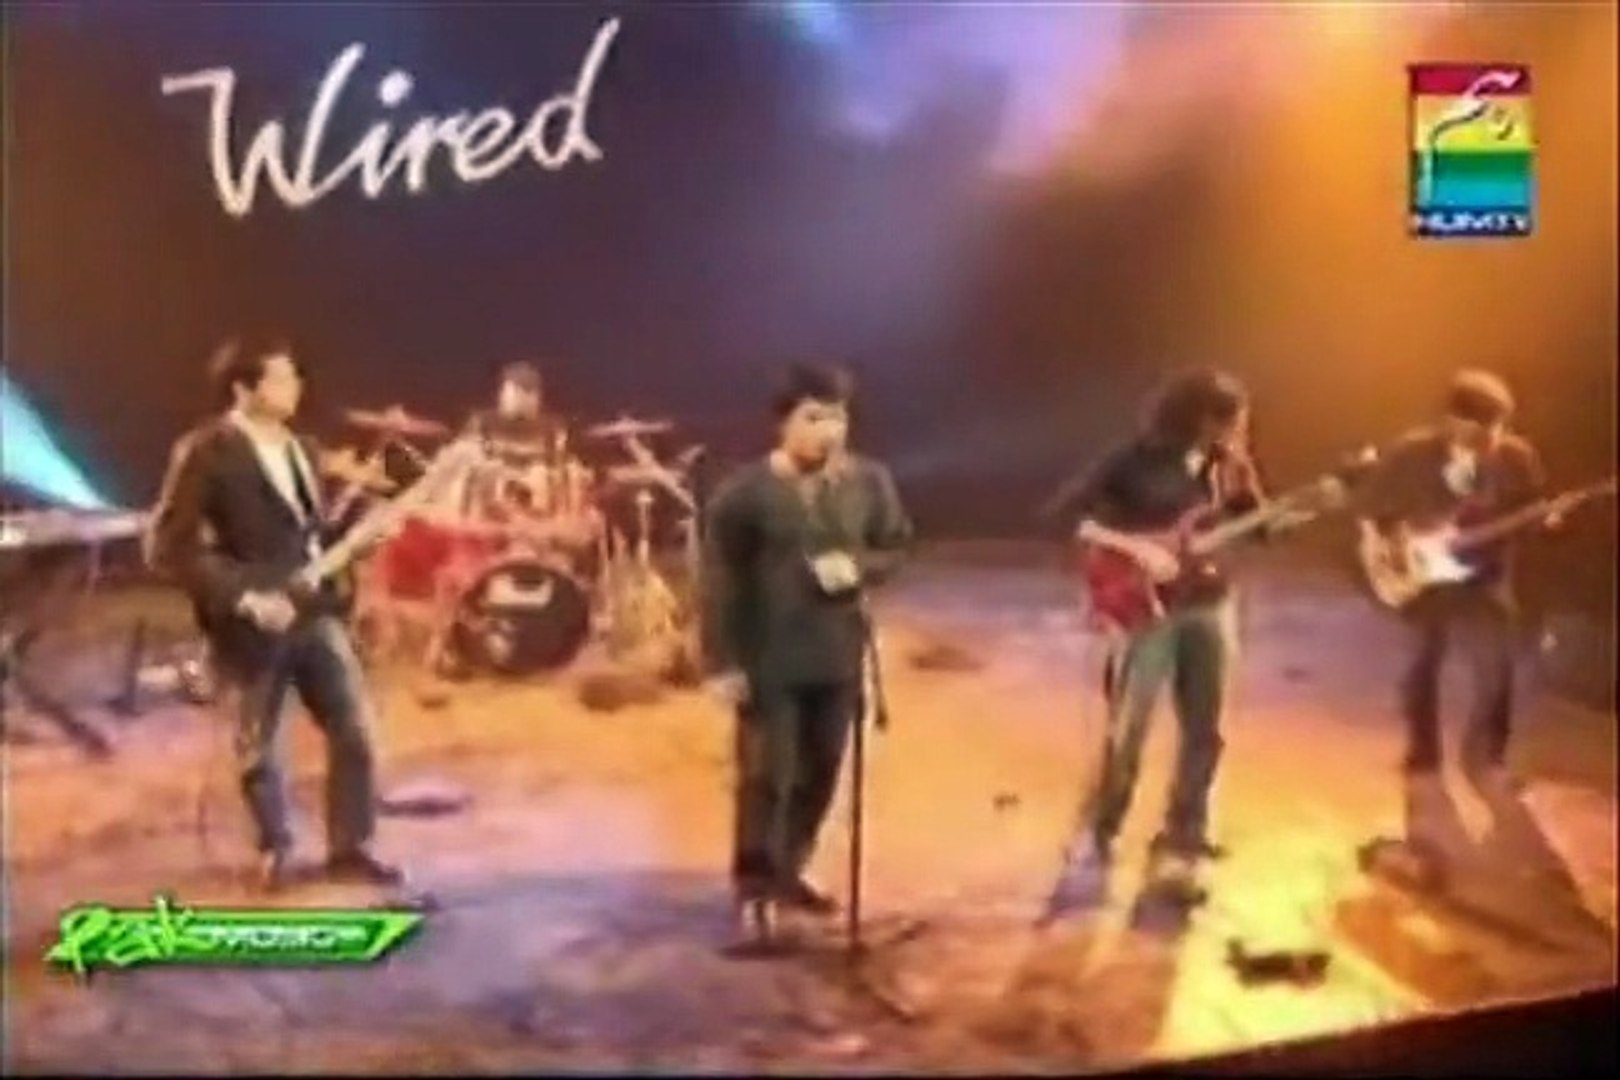 Ya Ali (Live On Wired) - Mekaal Hasan Band